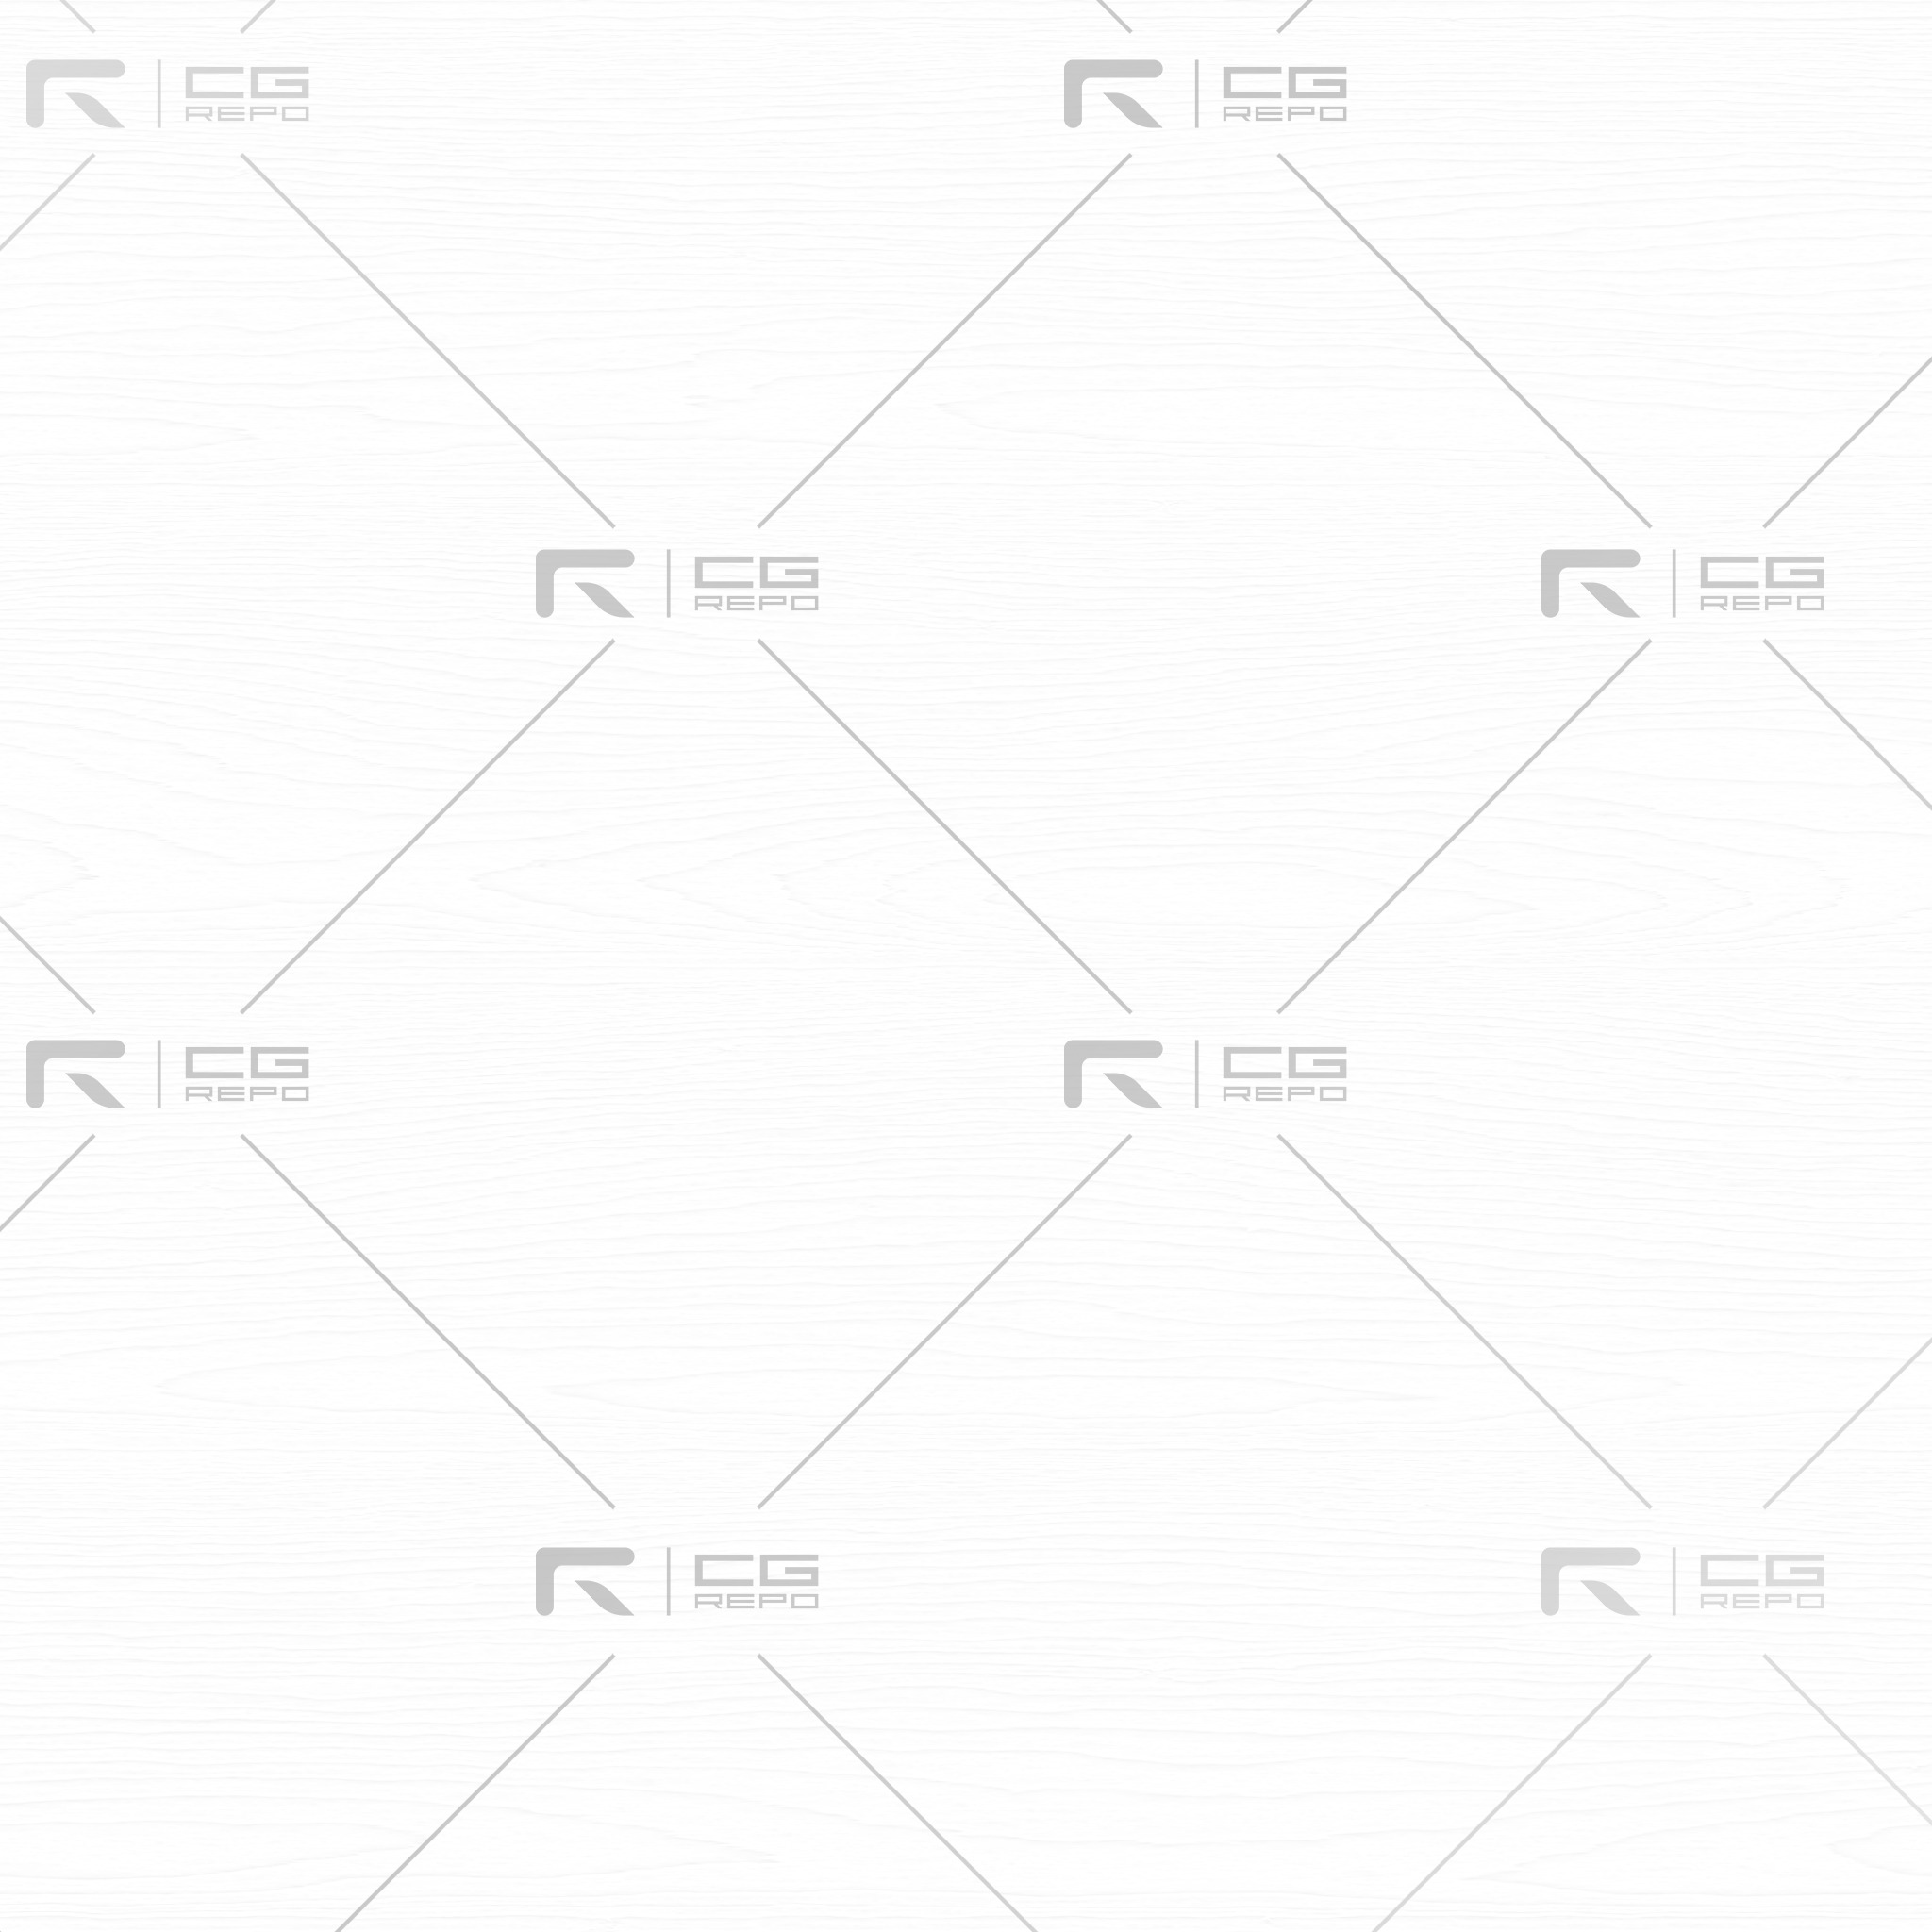 Oak - White Washed - Flat Ambient Occlusion Texture